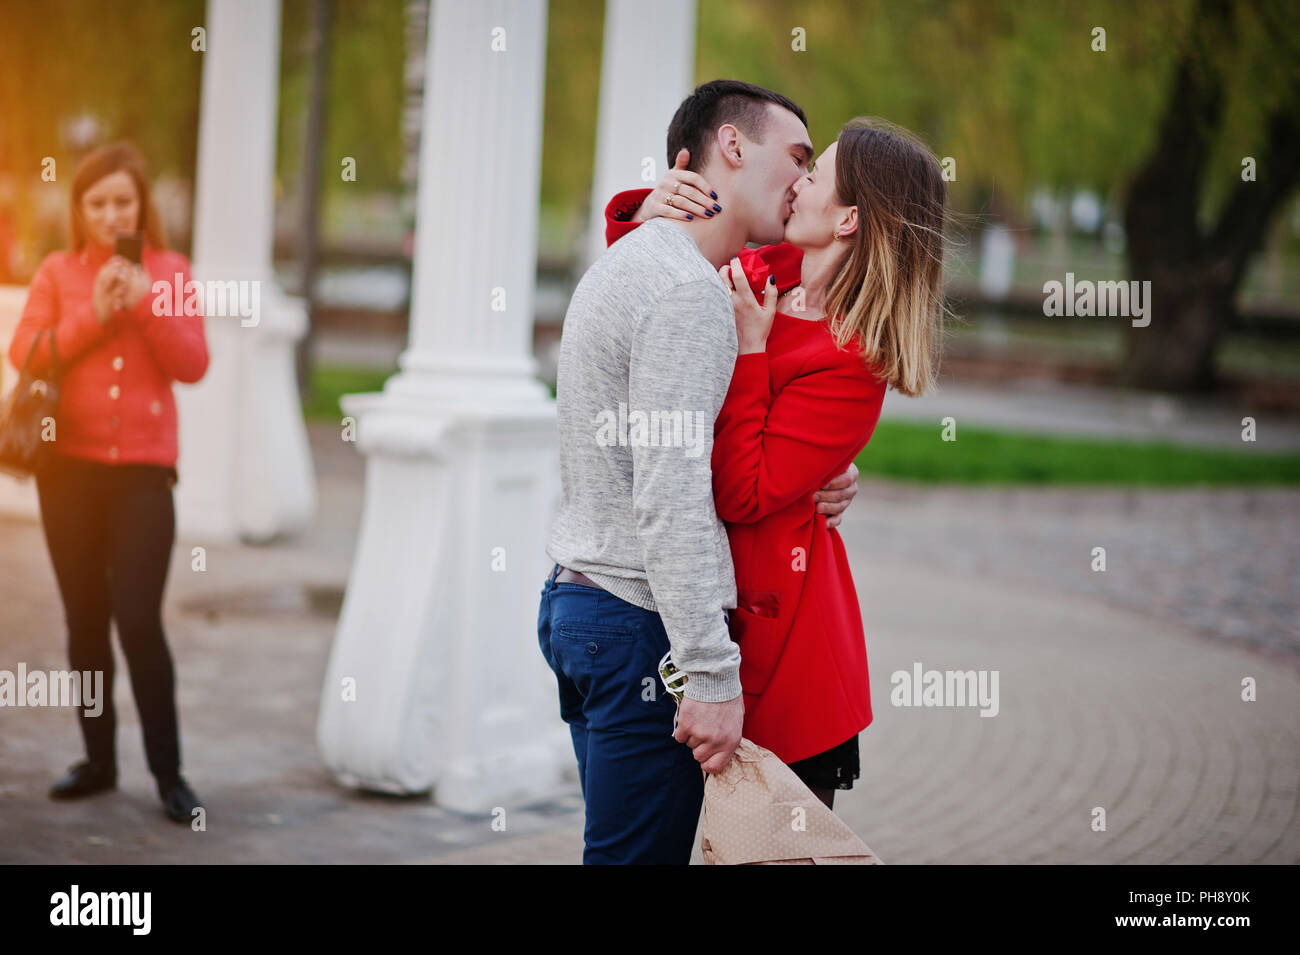 Marriage proposal. Kissed girl and boyfriend with bouquet of flowers - Stock Image